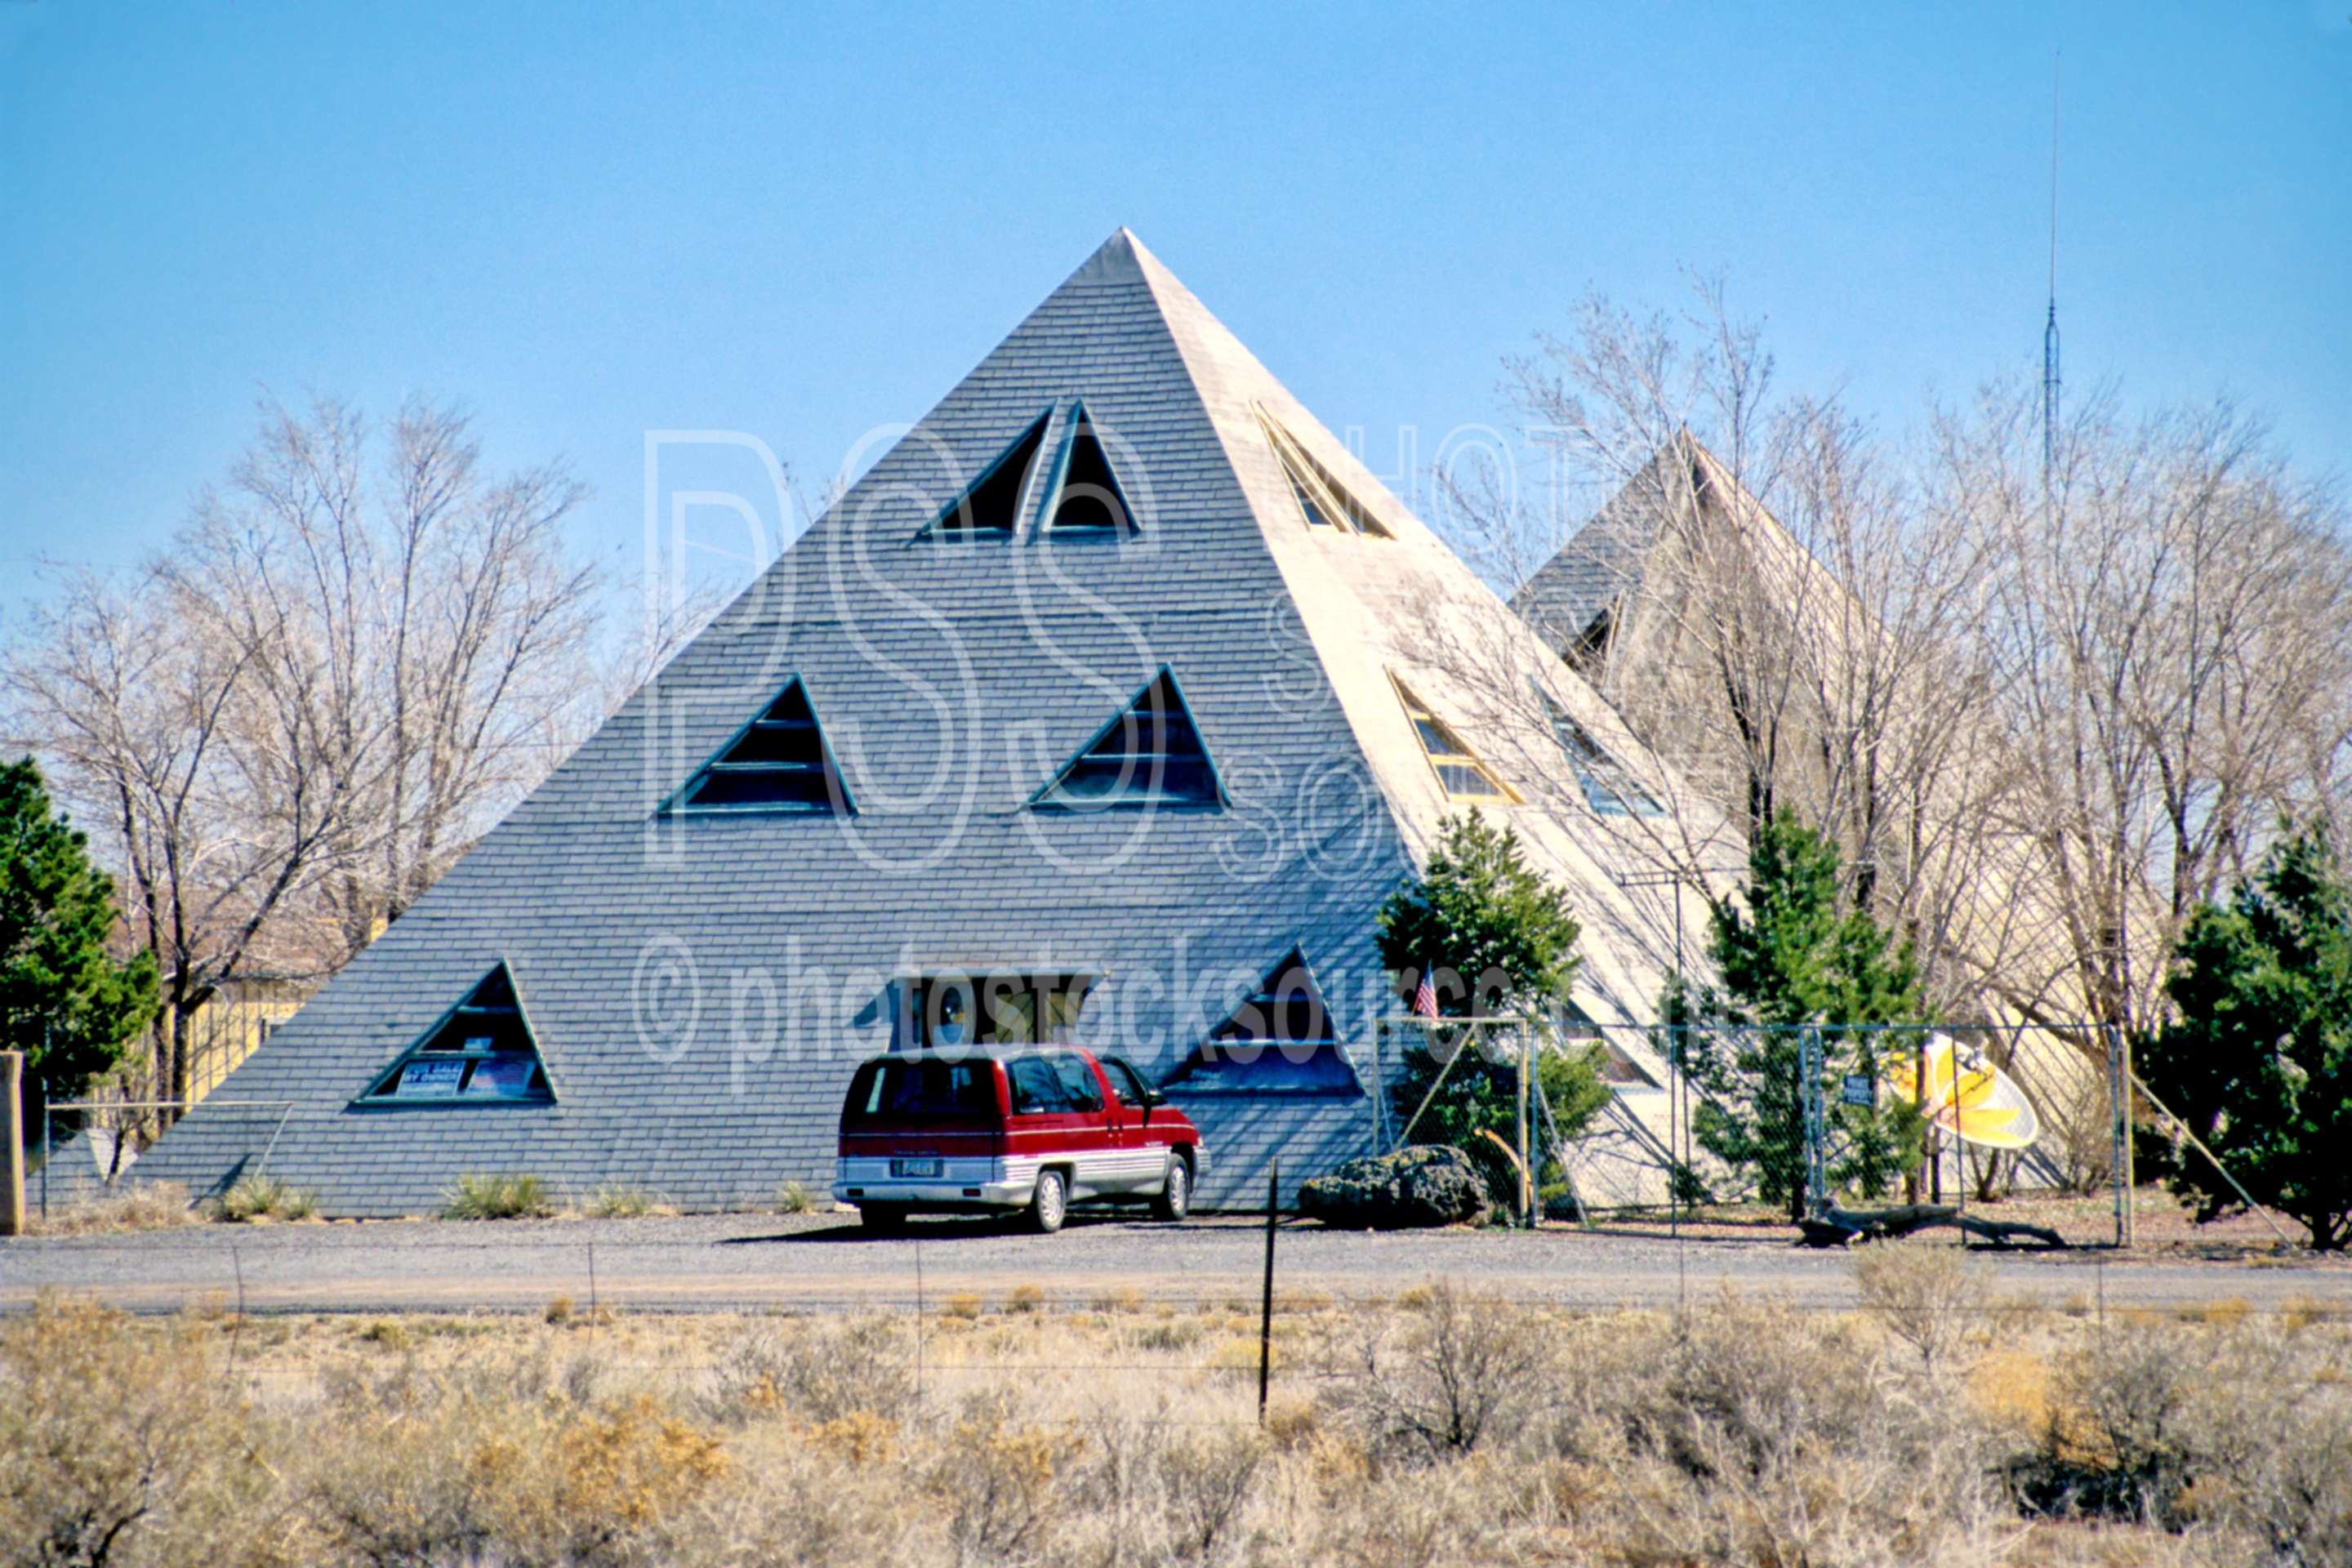 Photo of pyramid house by photo stock source building for Building a house in arizona